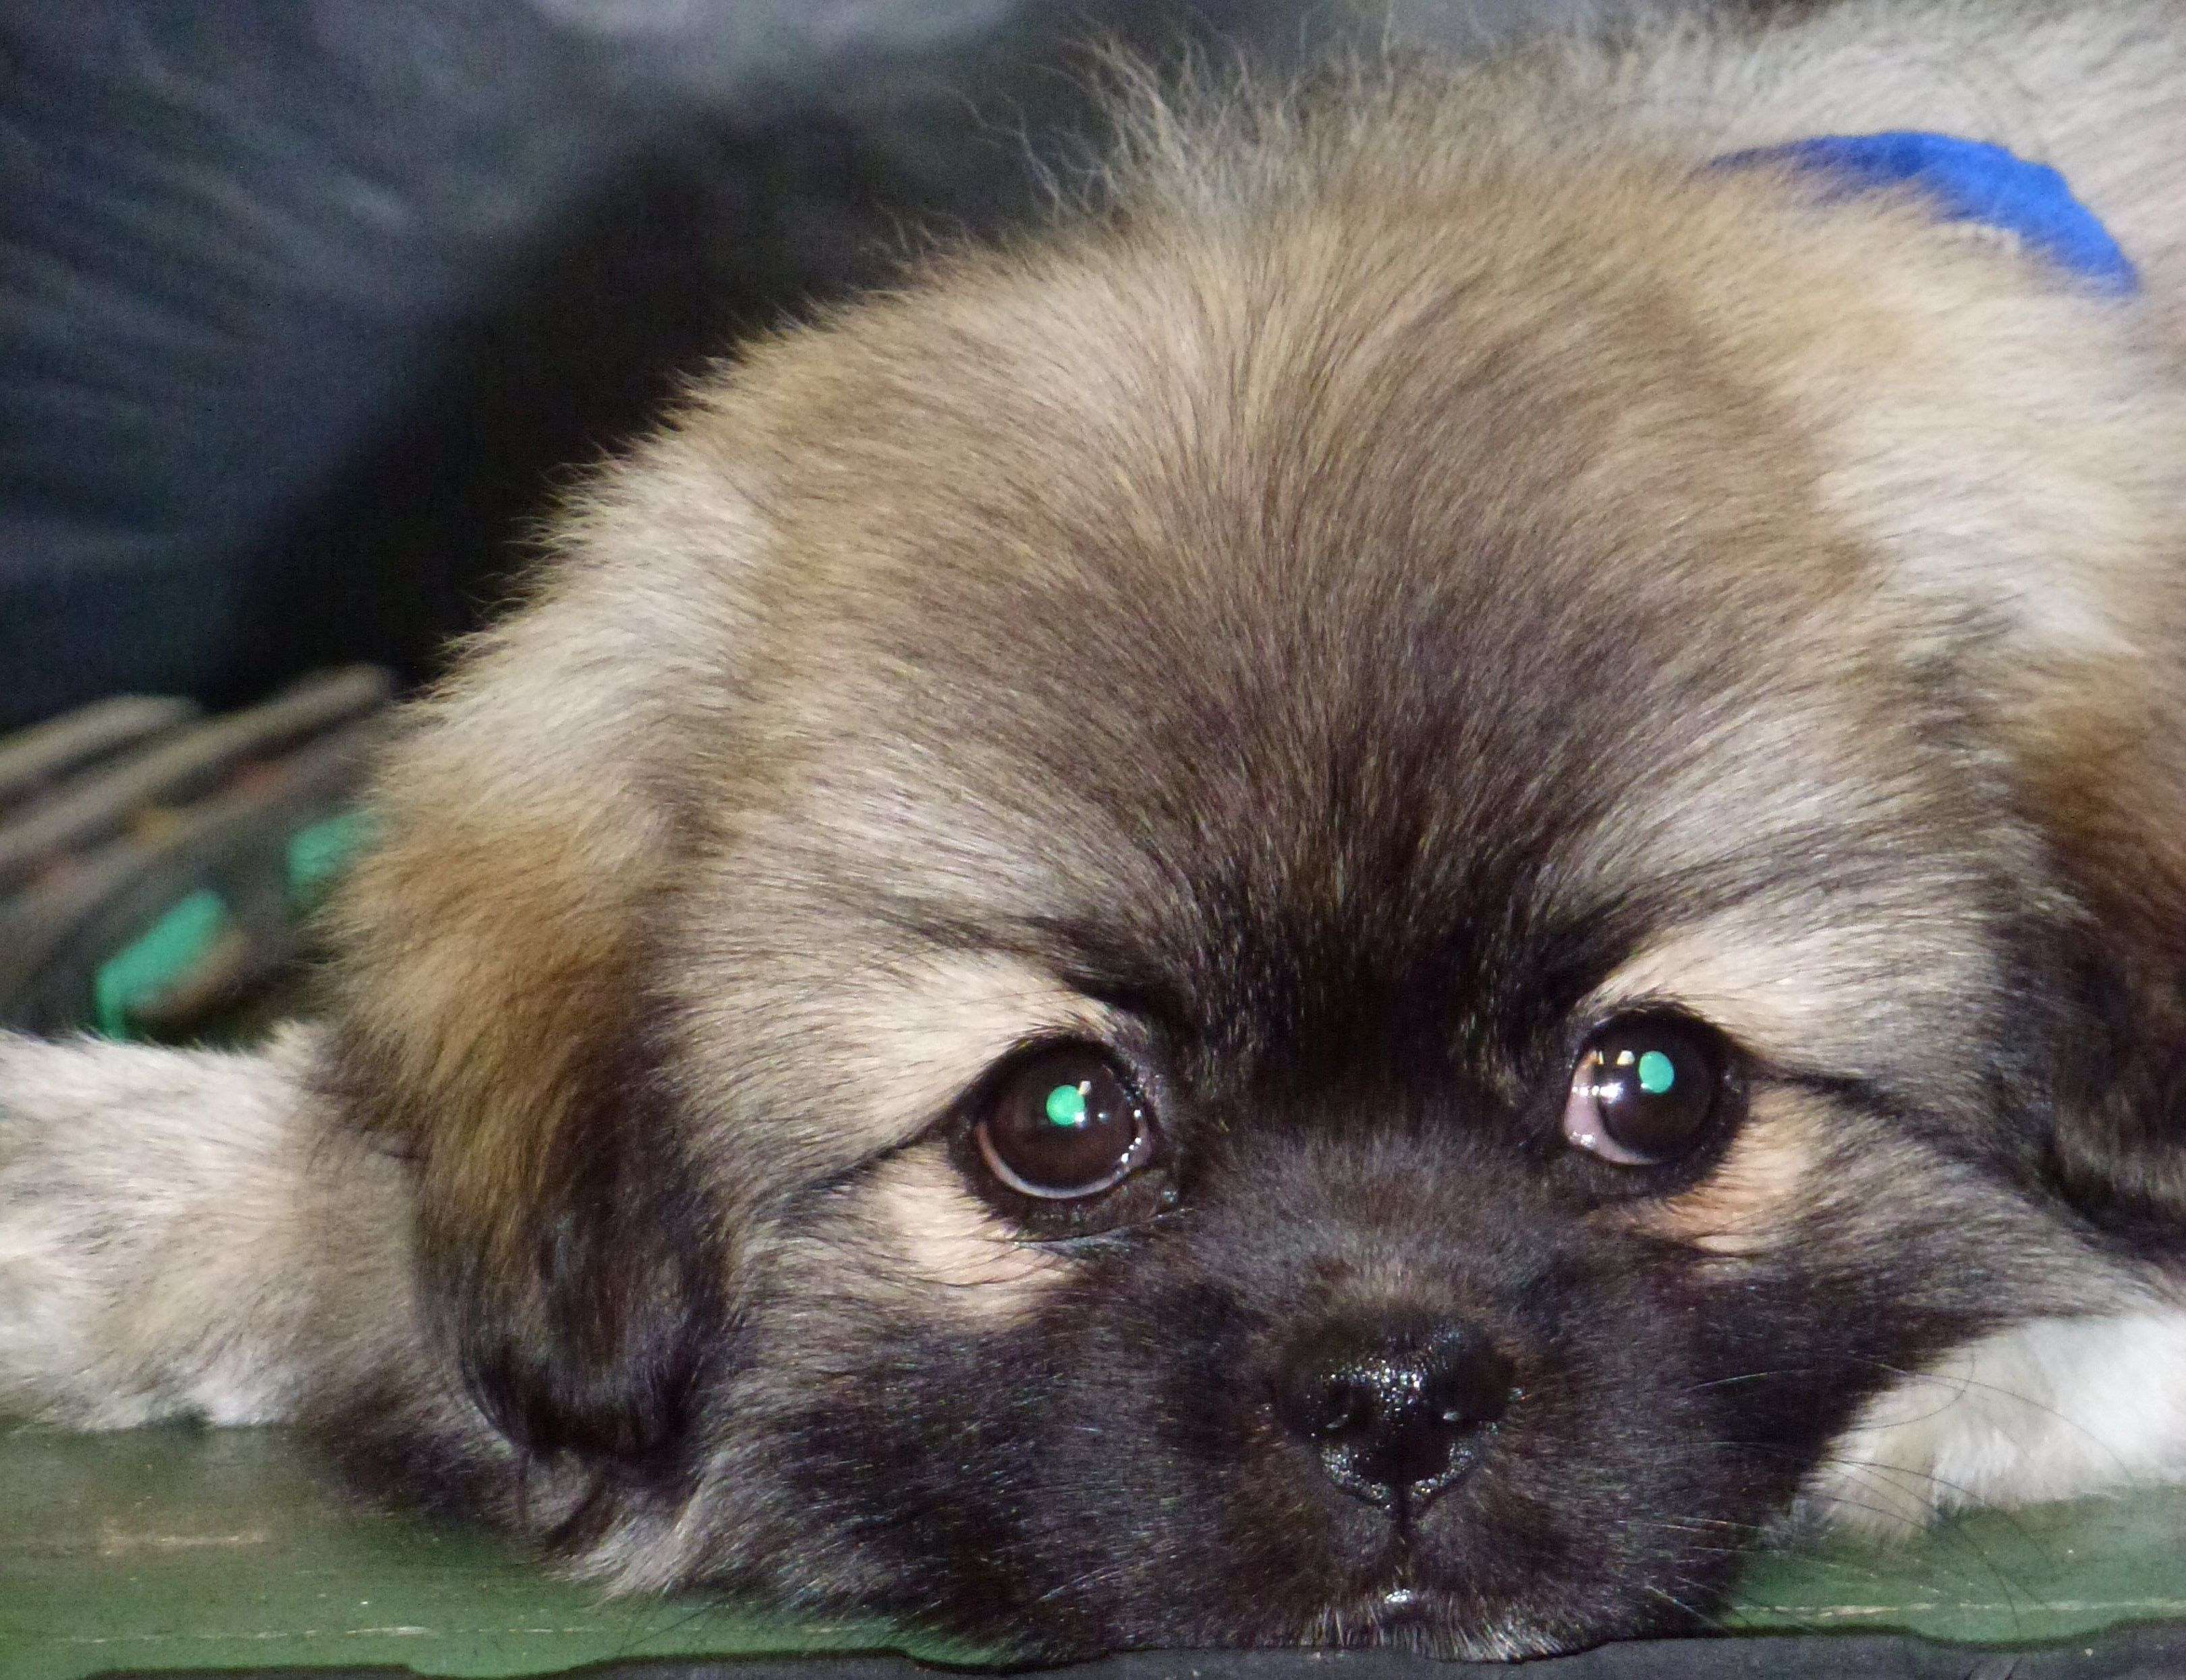 Tibetan Spaniel Puppy Too Cute Looks Just Like My Coco Did As A